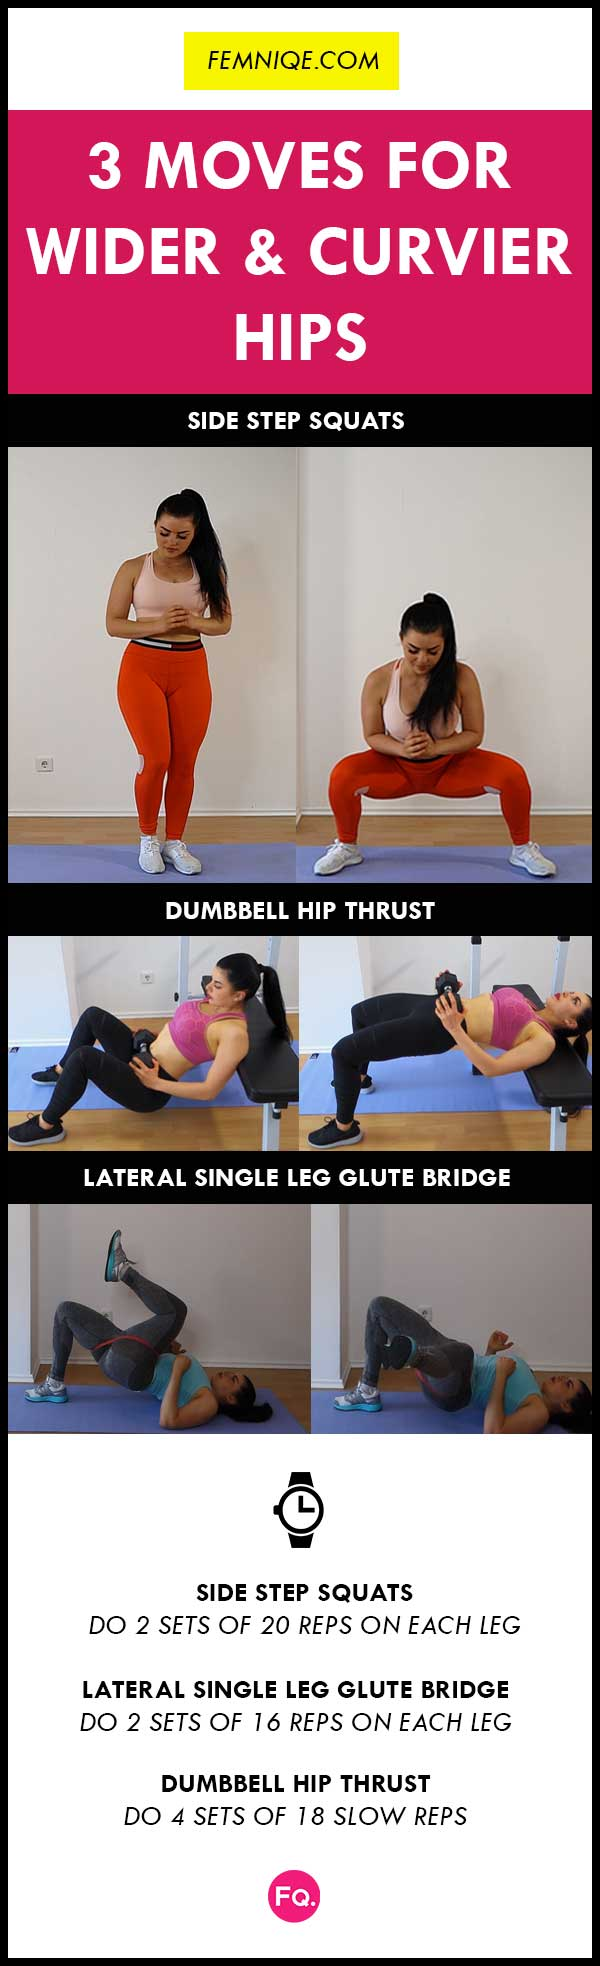 How To Get Hips And Curves workout plan